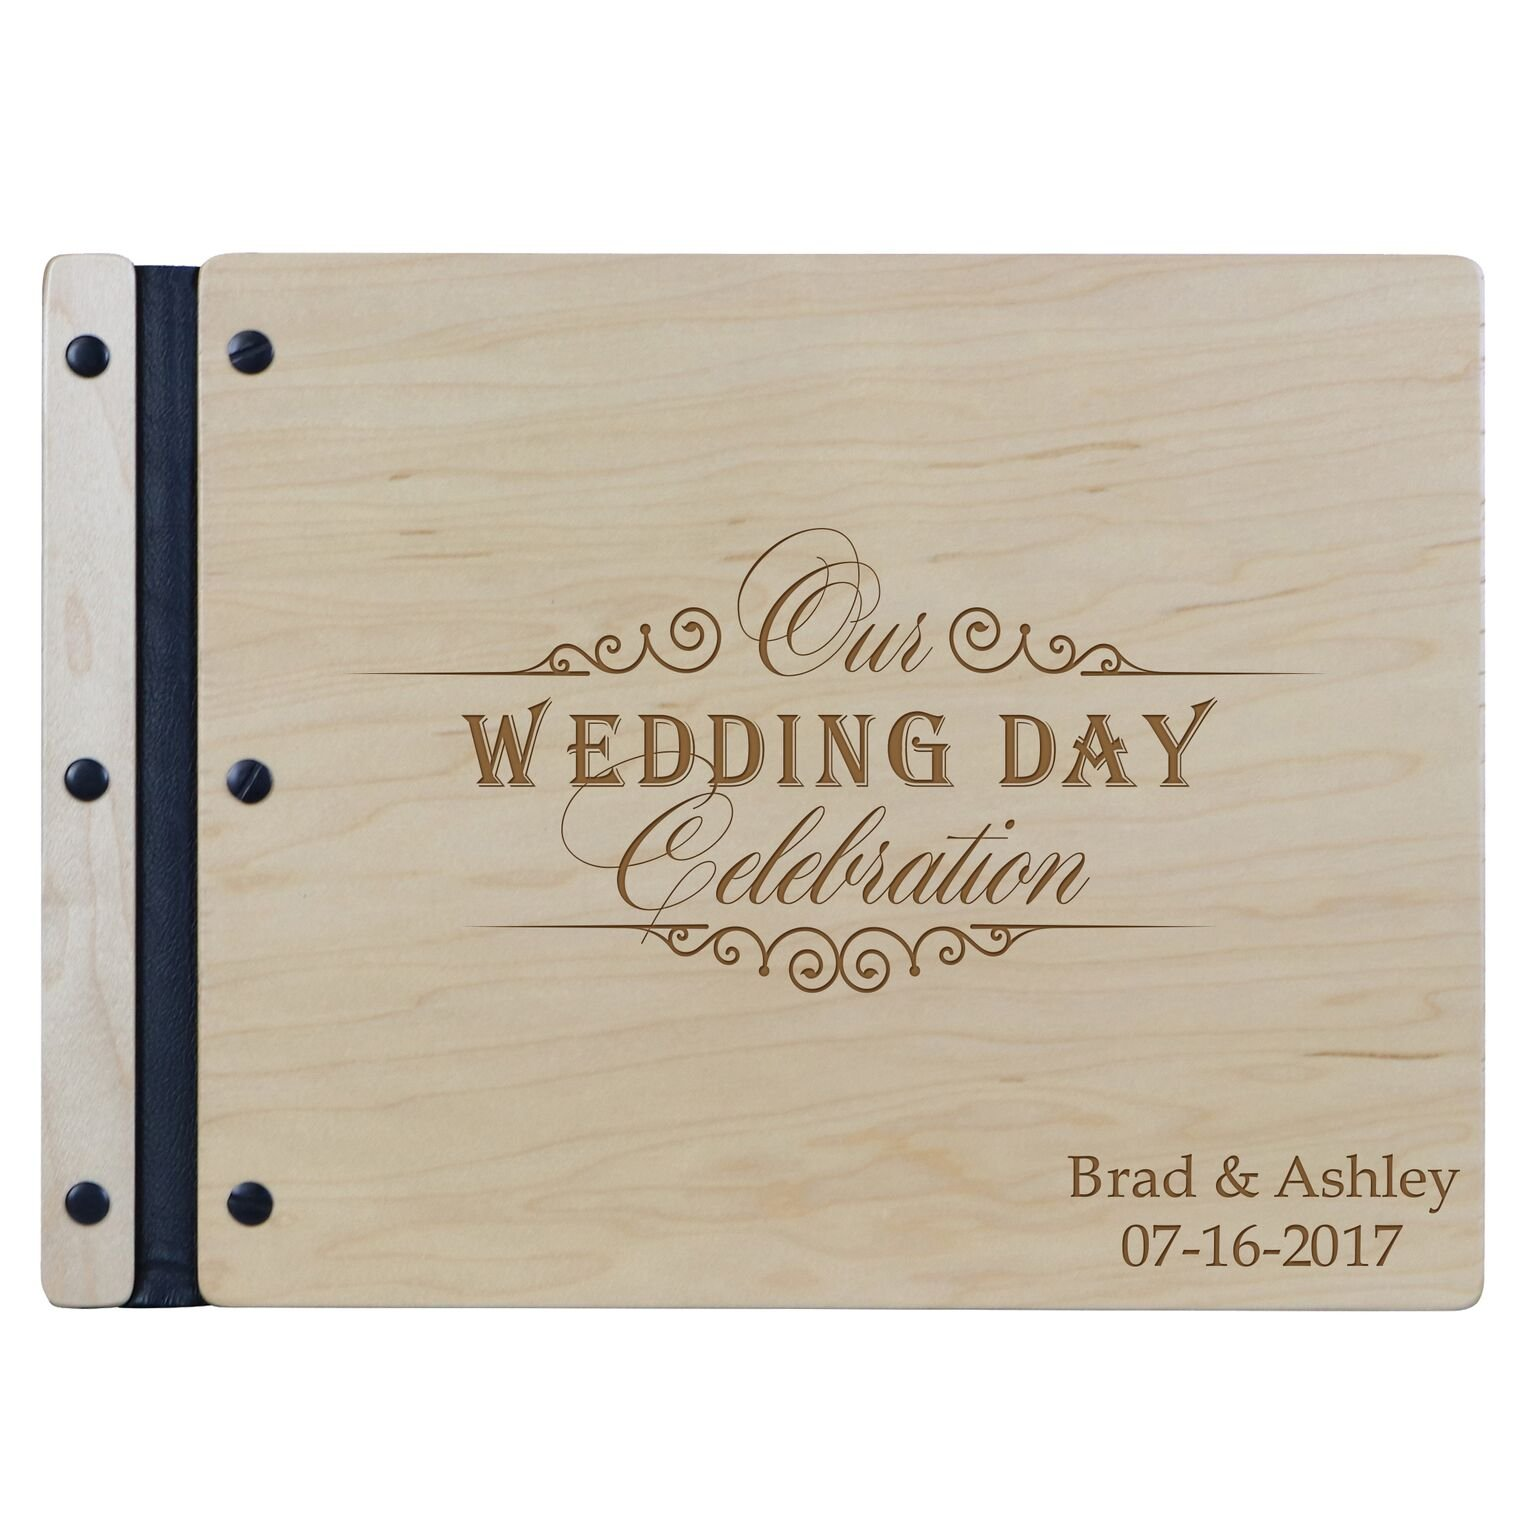 """LifeSong Milestones Personalized Mr and Mrs. Wedding Anniversary Guest Book Registry for Bride and Groom Newlywed Couple Custom Engraved Cherry wood 13.5'' x10"""" by (Wedding Celebration)"""